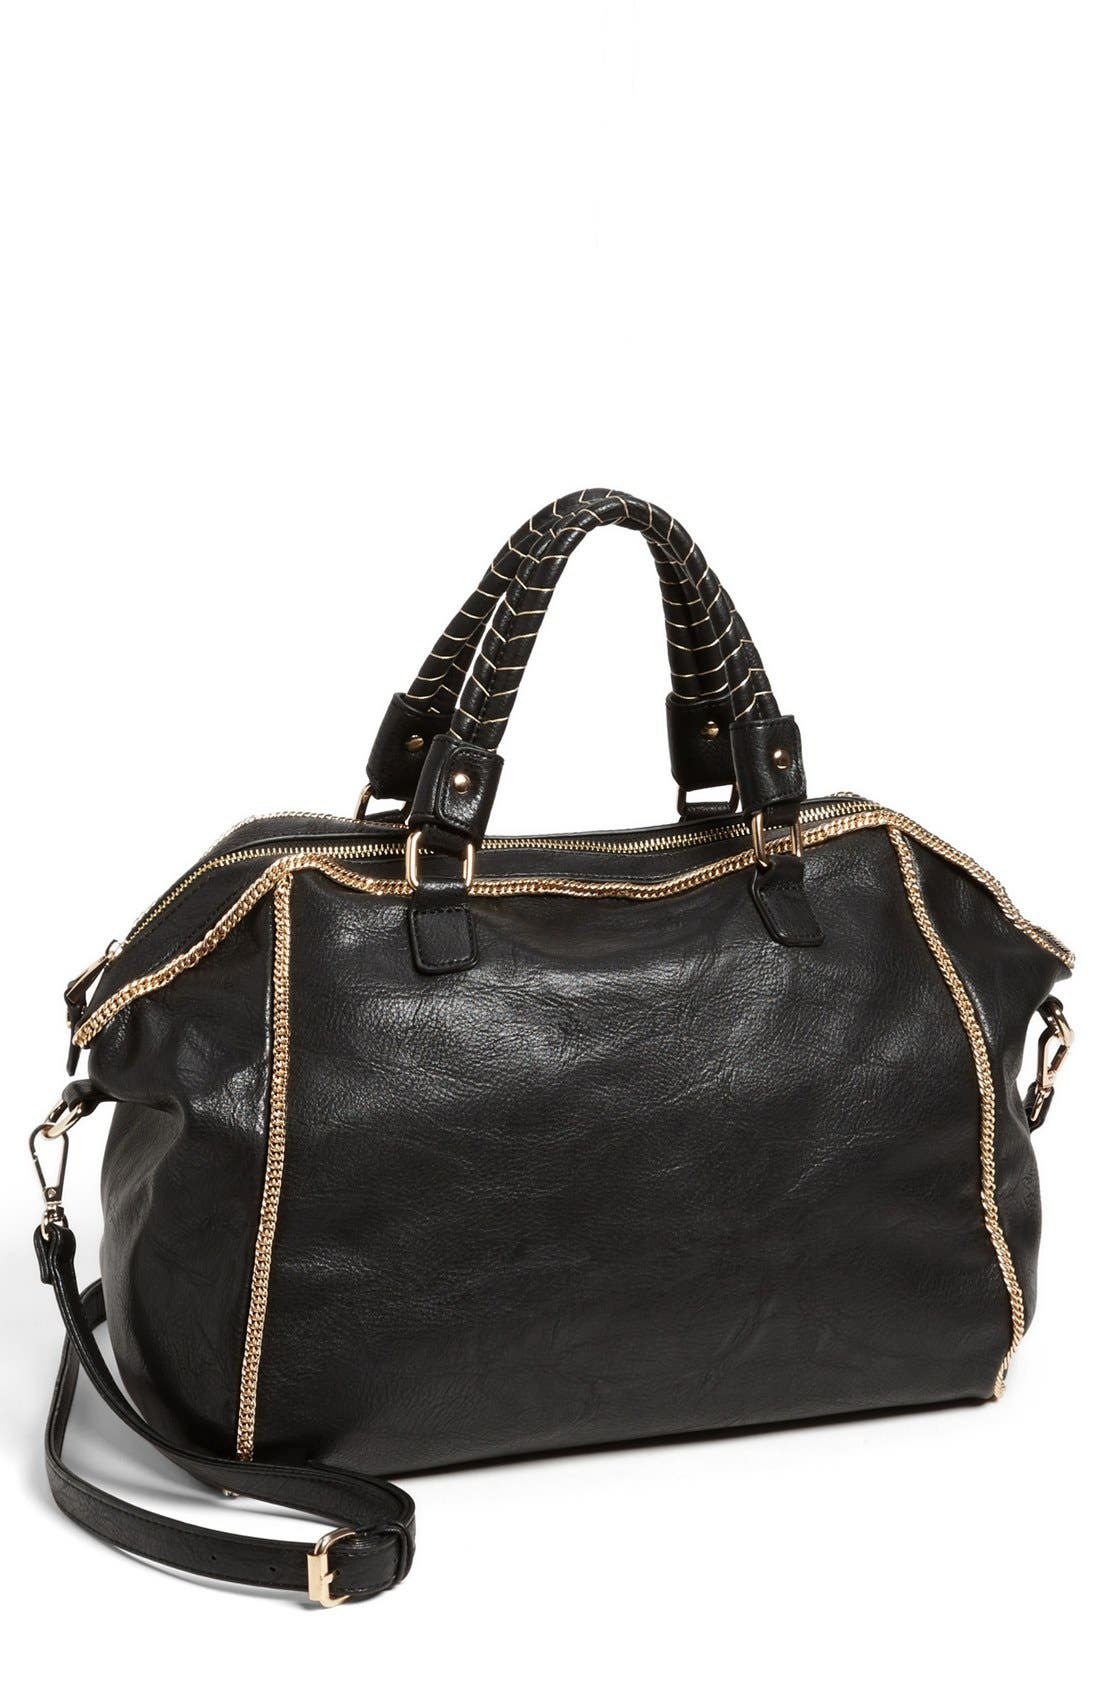 Main Image - Urban Expressions Handbags 'Janae' Faux Leather Satchel